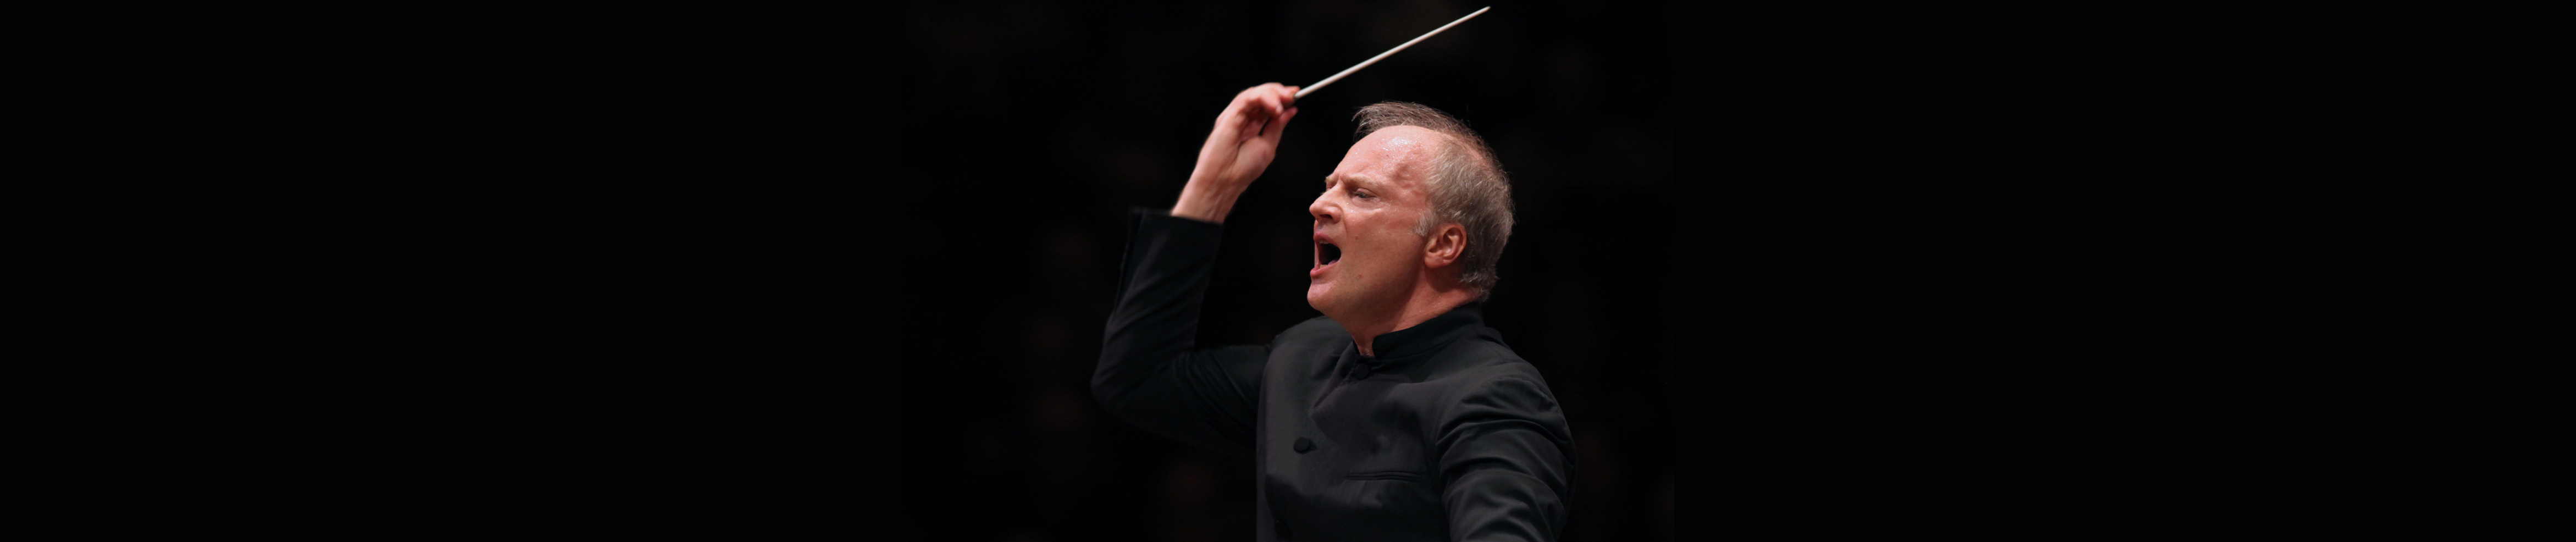 Gianandrea Noseda conducts Shostakovich